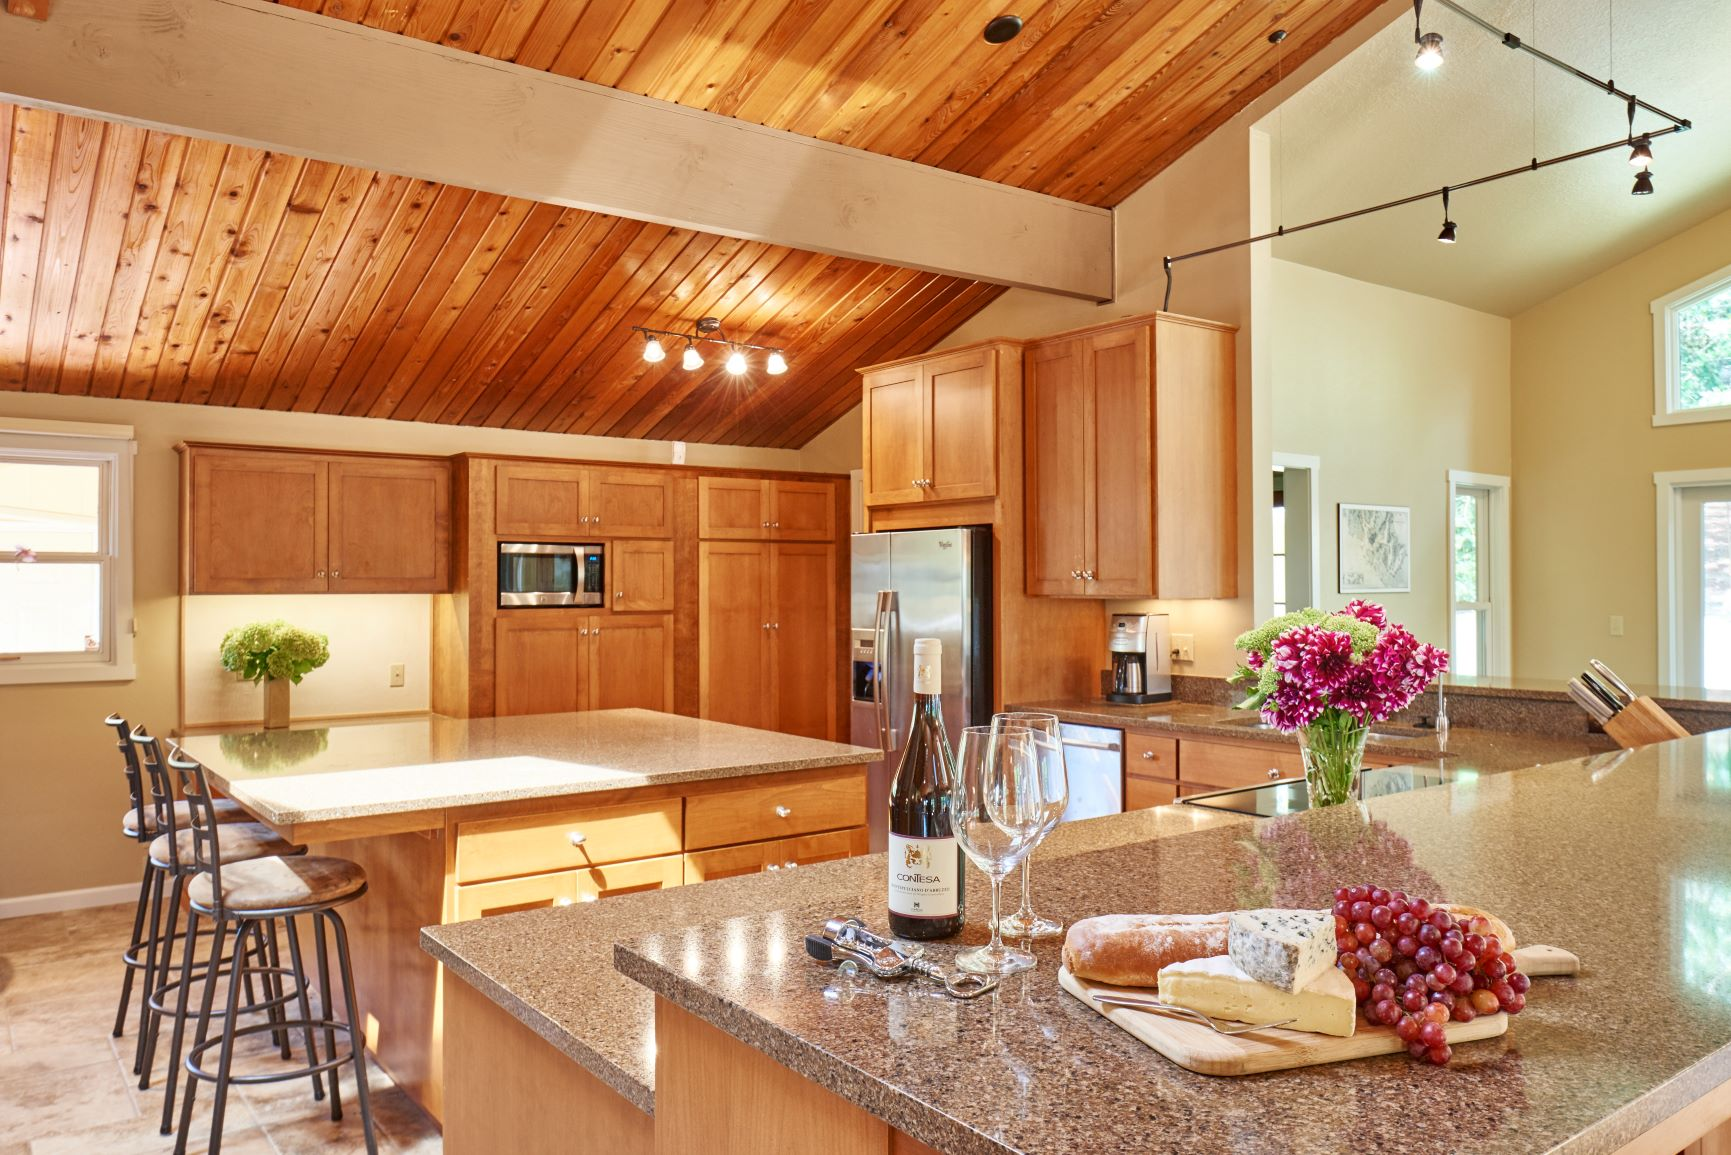 This home remodel integrated the kitchen into a great room.